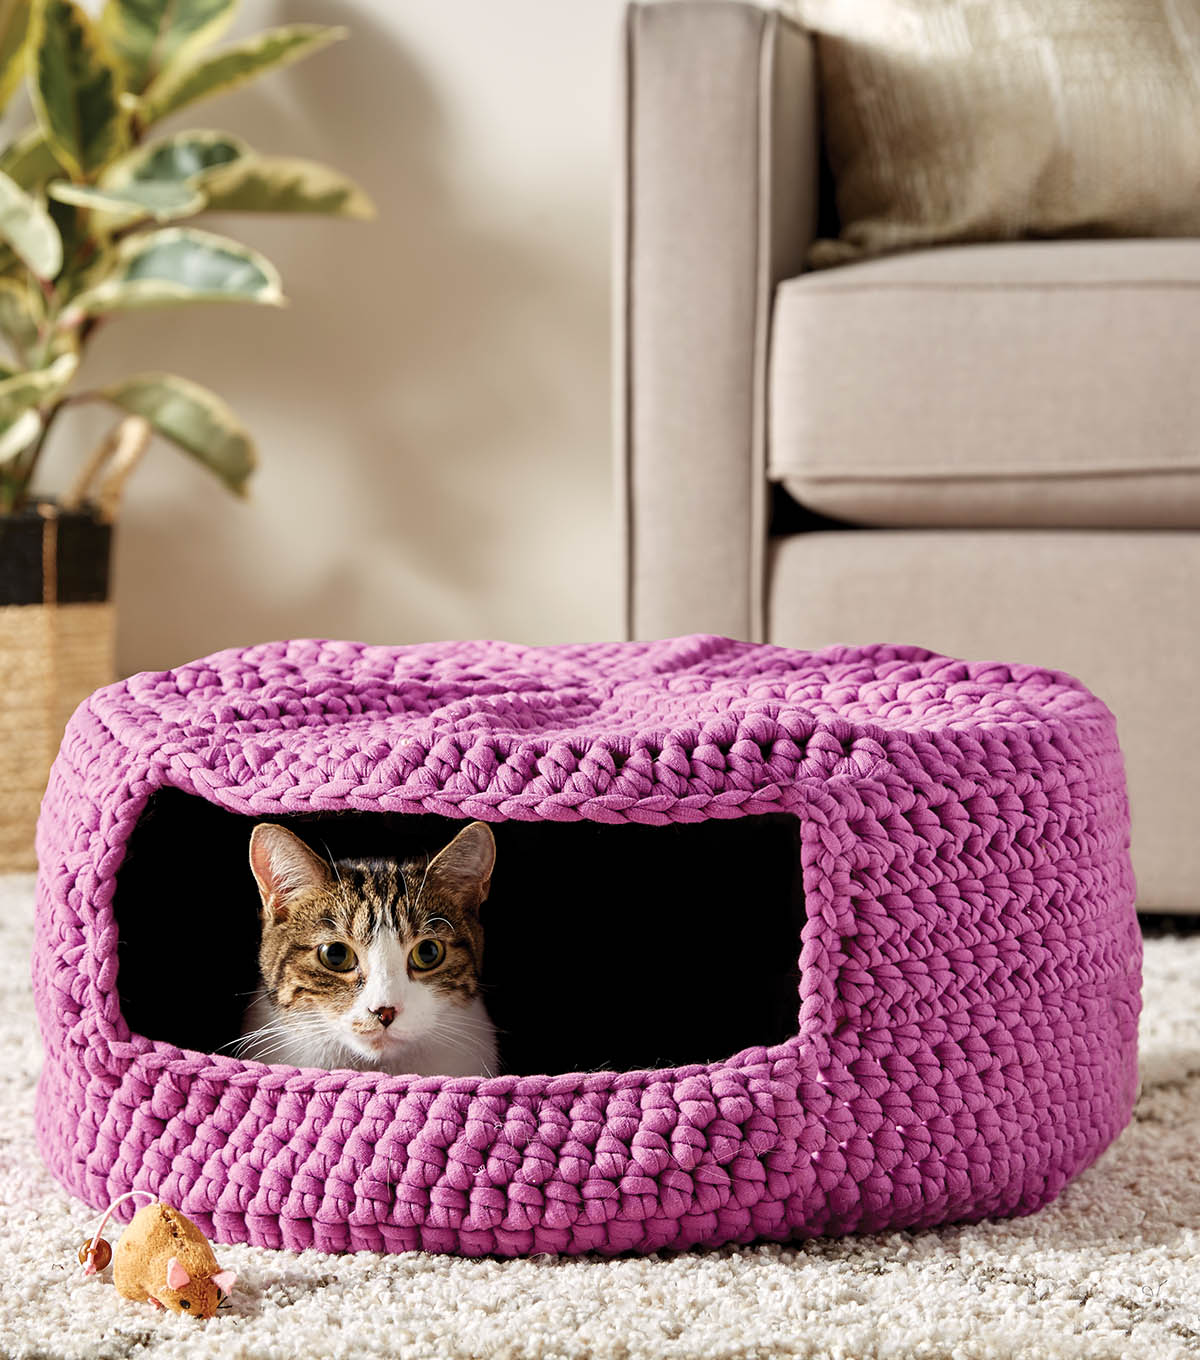 How To Make A Crochet Cat Bed